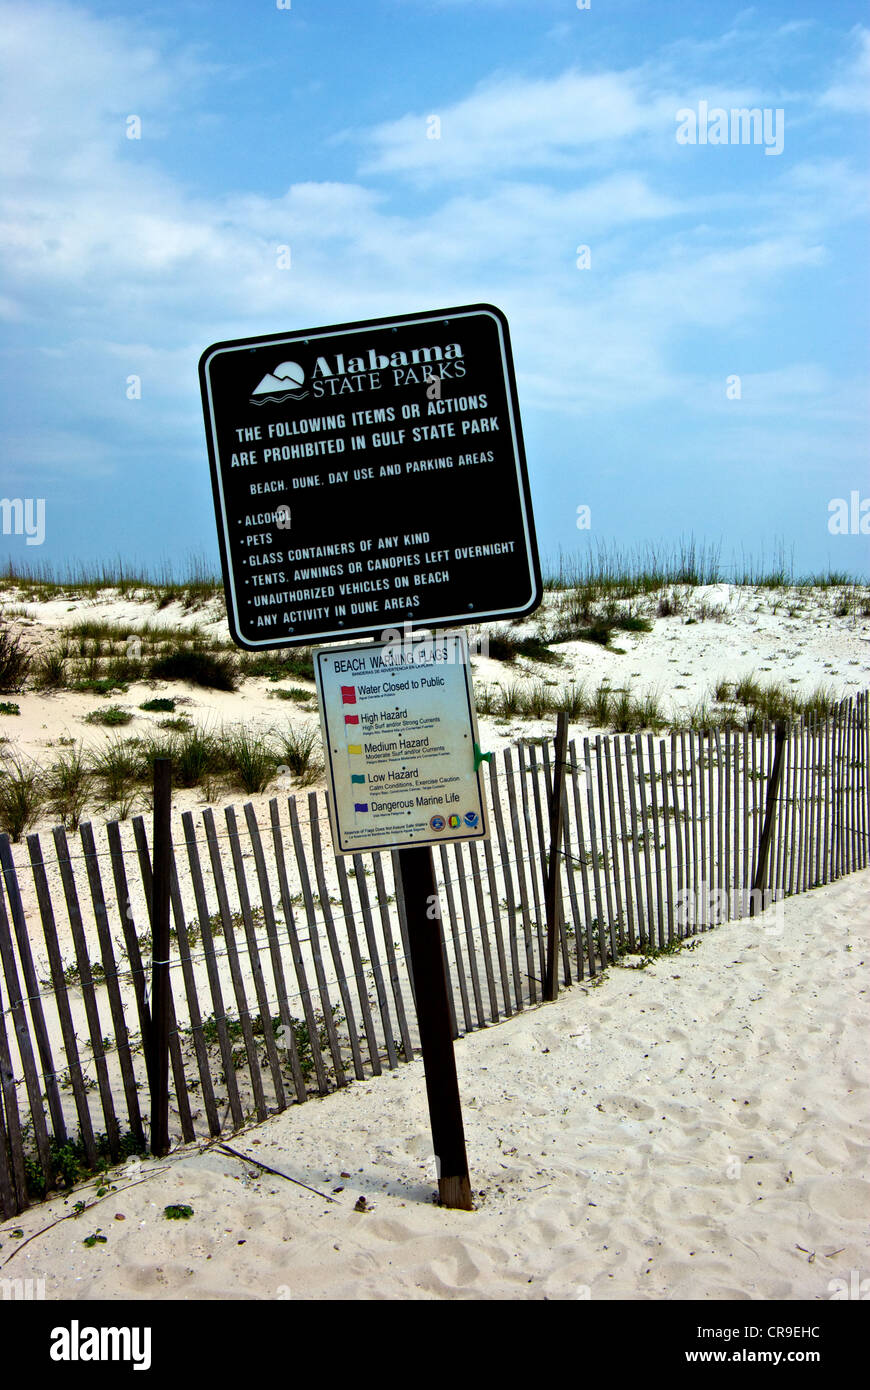 Gulf Shores Alabama State Parks beach dune day use parking rules sign sea condition warning flags Stock Photo